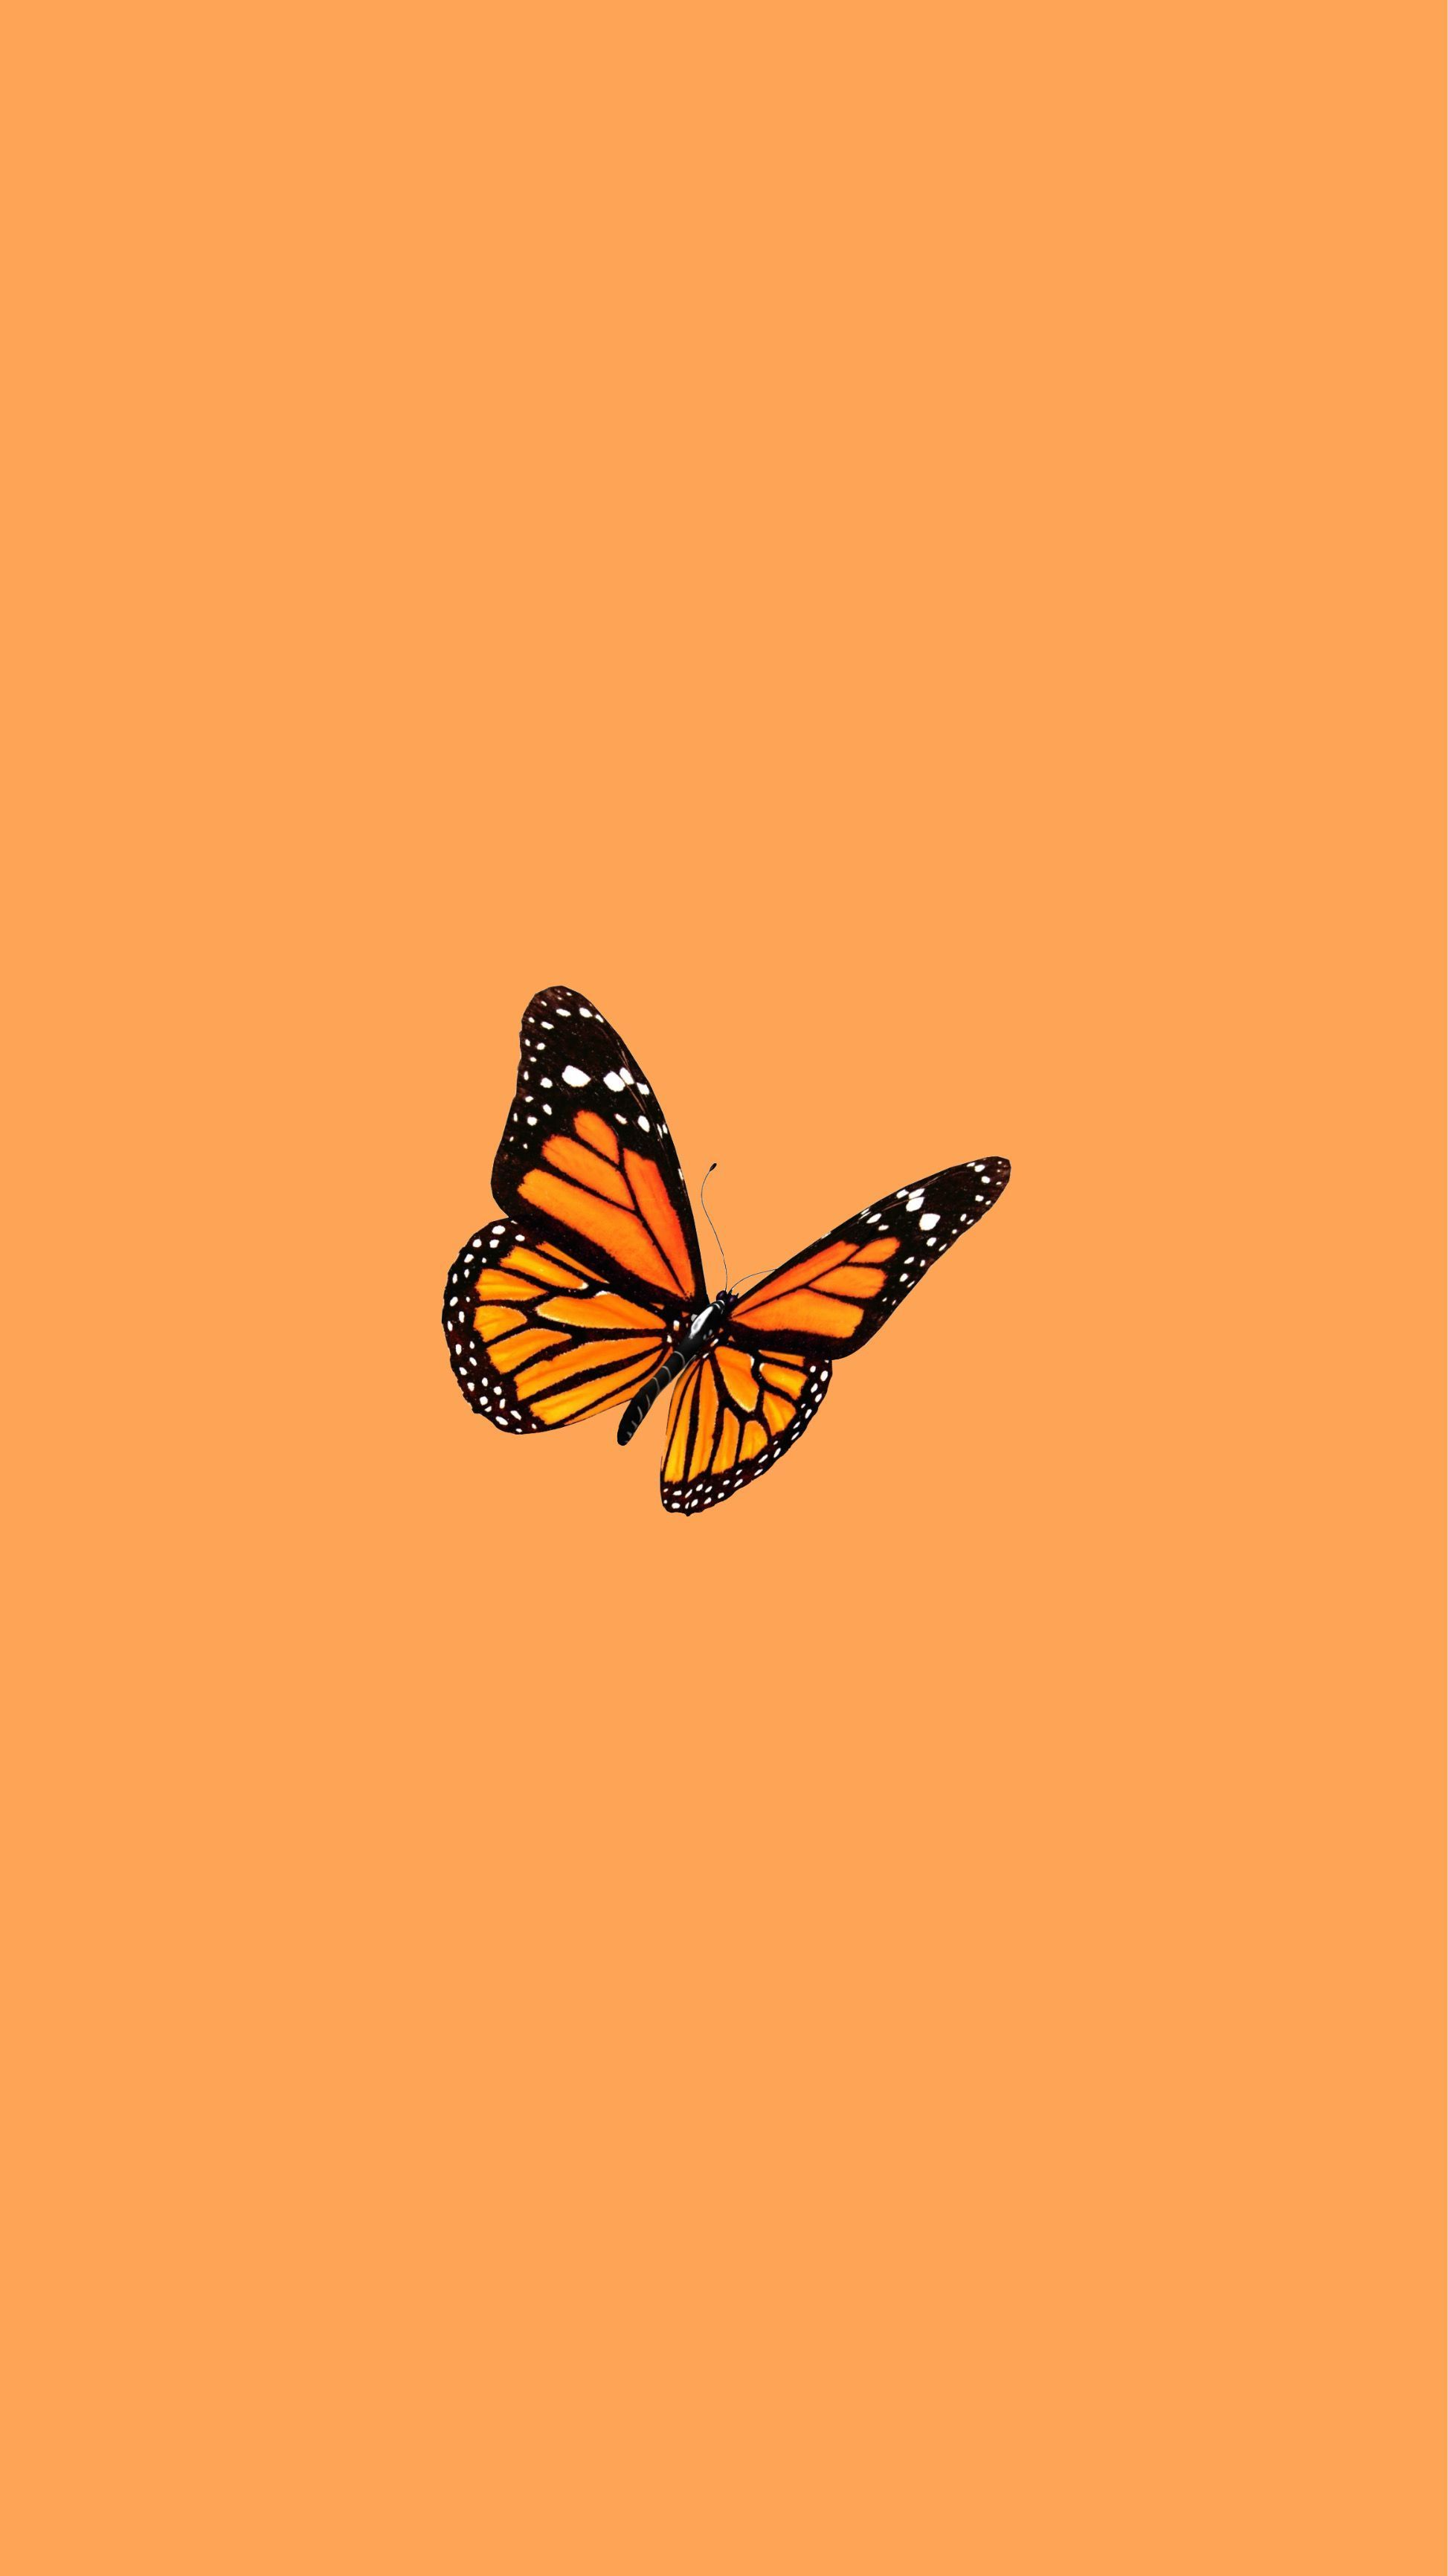 Orange Aesthetic Discover Butterfly Wallpaper Orange Wallpaper Butterfly Wallpaper Butterfly Wallpaper Iphone